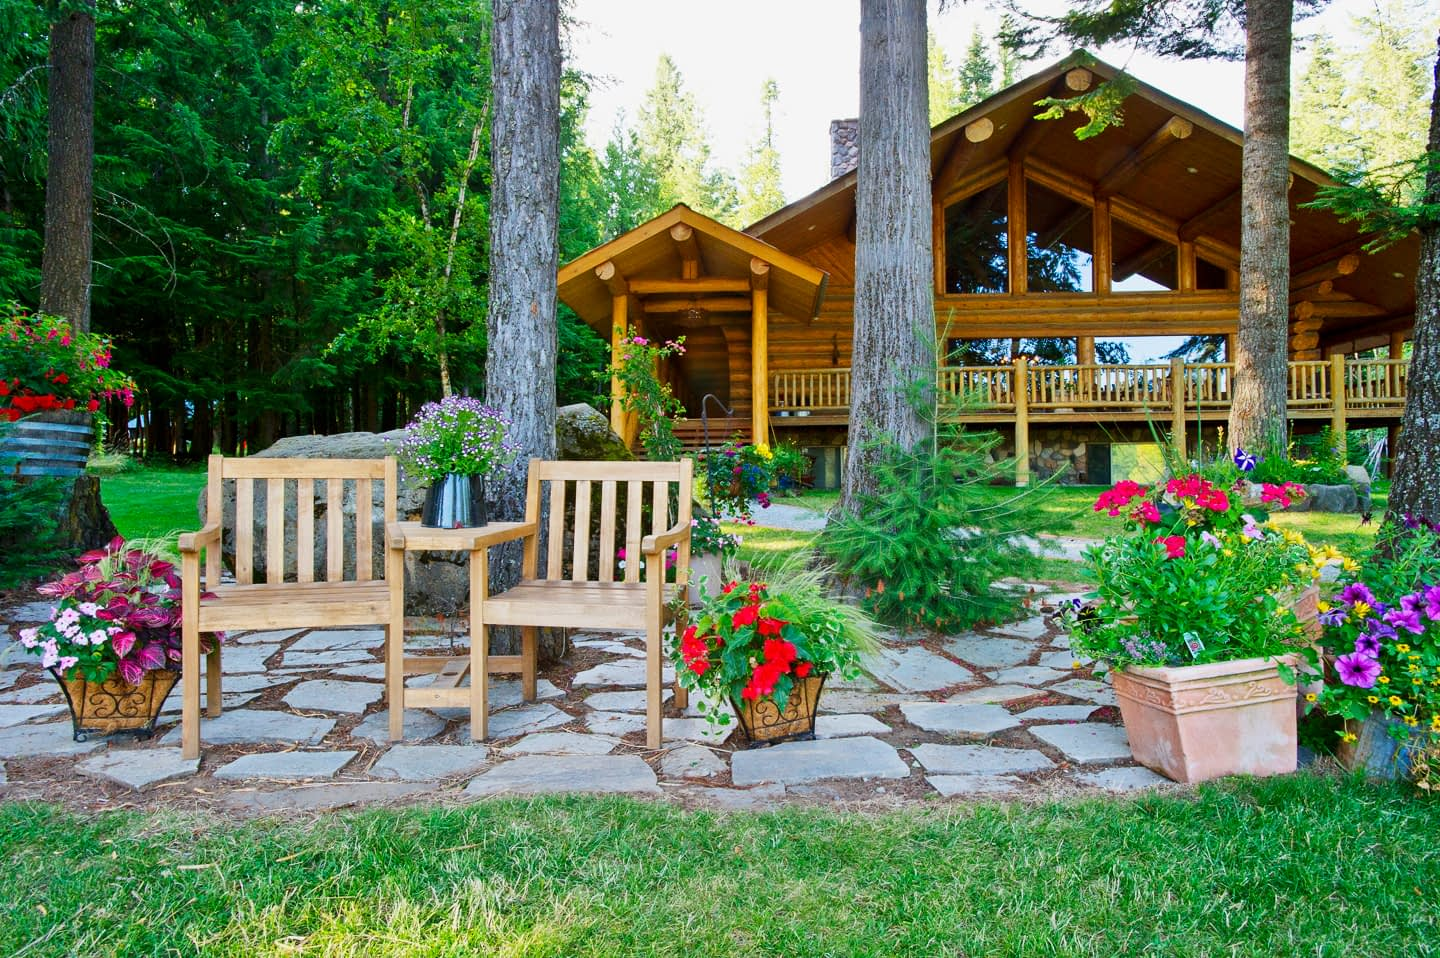 Large log lodge in the background with relaxing chairs in the foreground with flowers around them